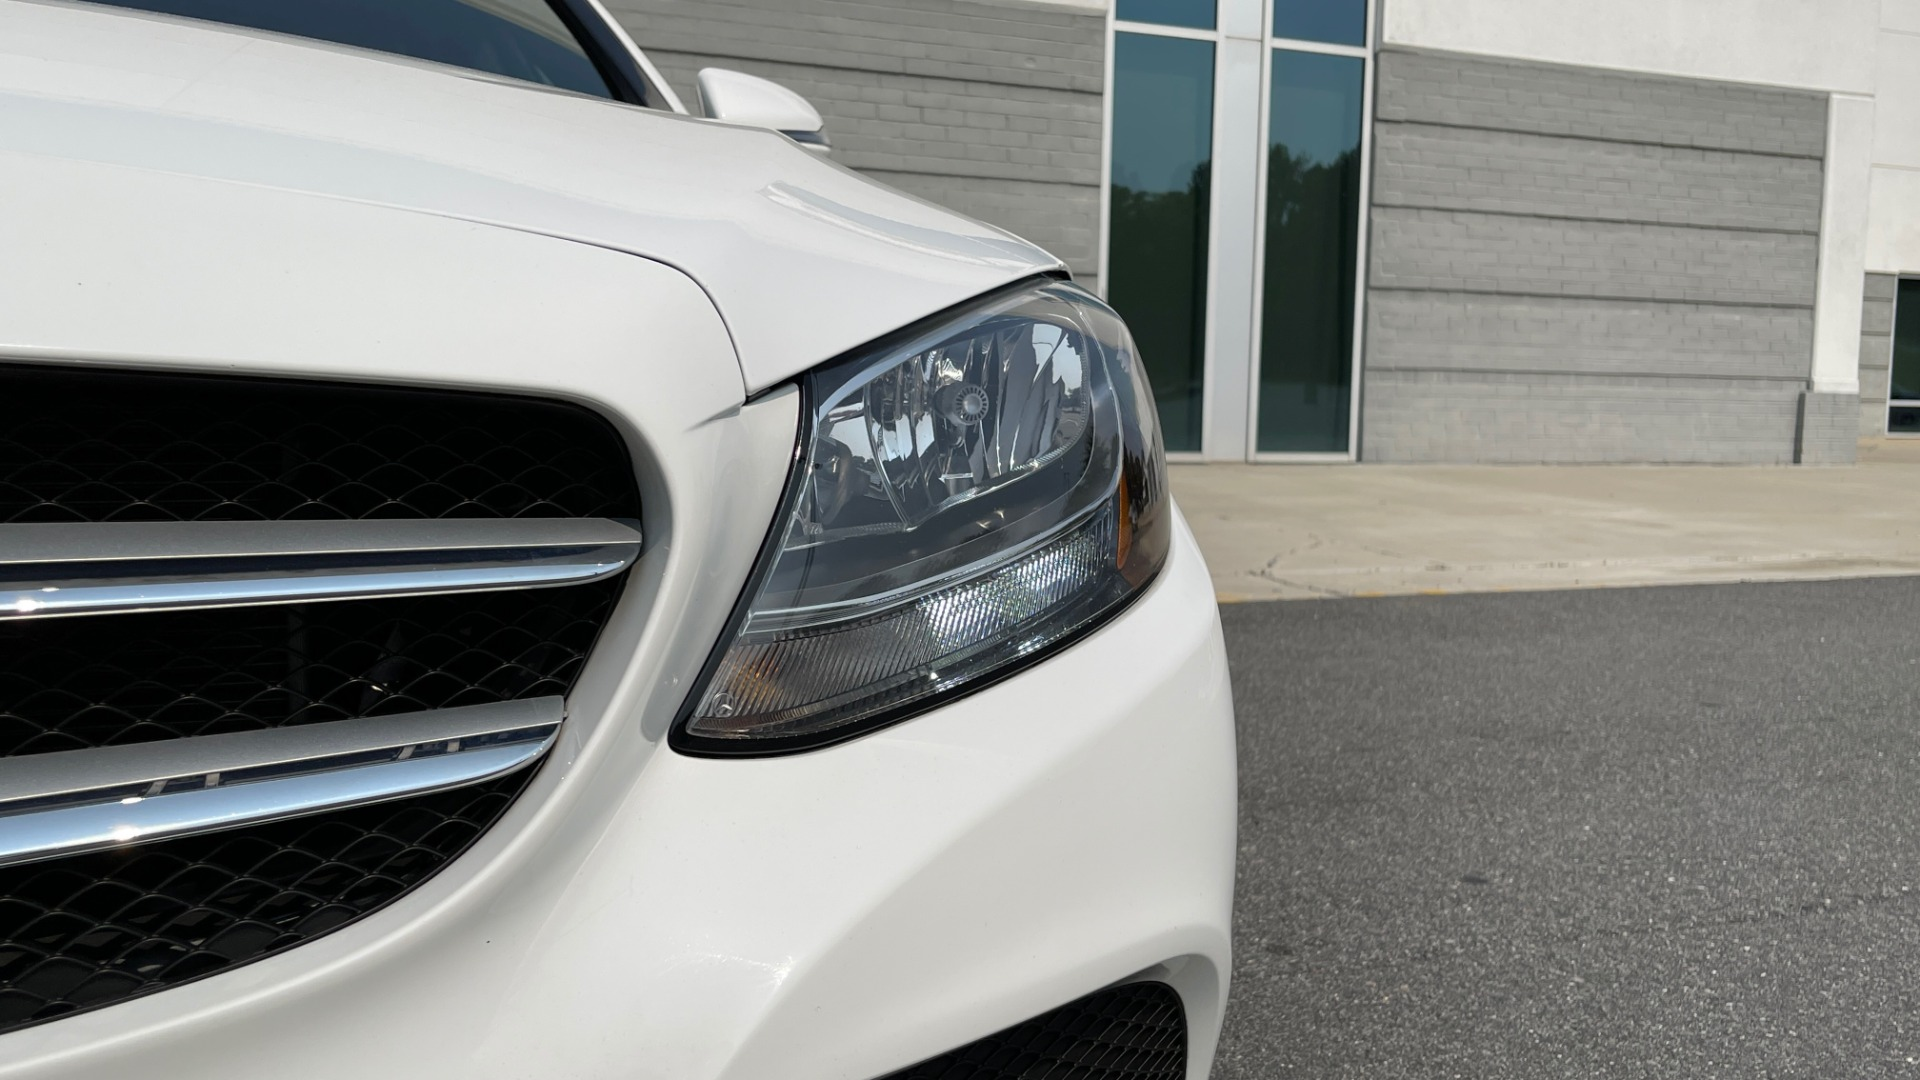 Used 2018 Mercedes-Benz C-Class C 300 4MATIC / PREMIUM / BURMESTER / HTD STS / SUNROOF / REARVIEW for sale $33,995 at Formula Imports in Charlotte NC 28227 13